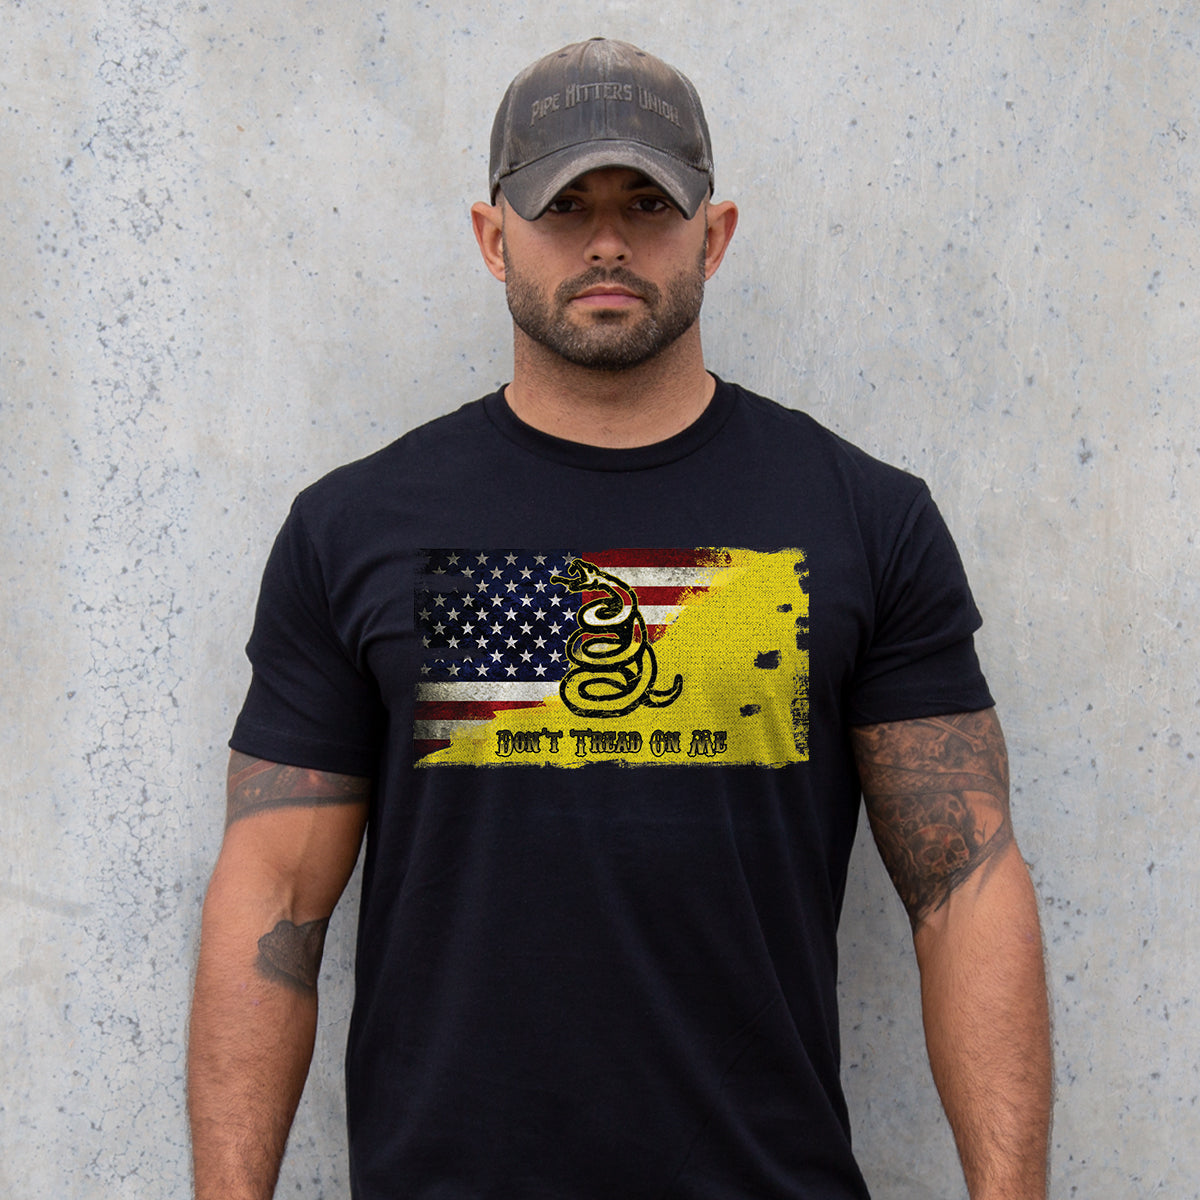 Modern Day Patriot -  - T-Shirts - Pipe Hitters Union